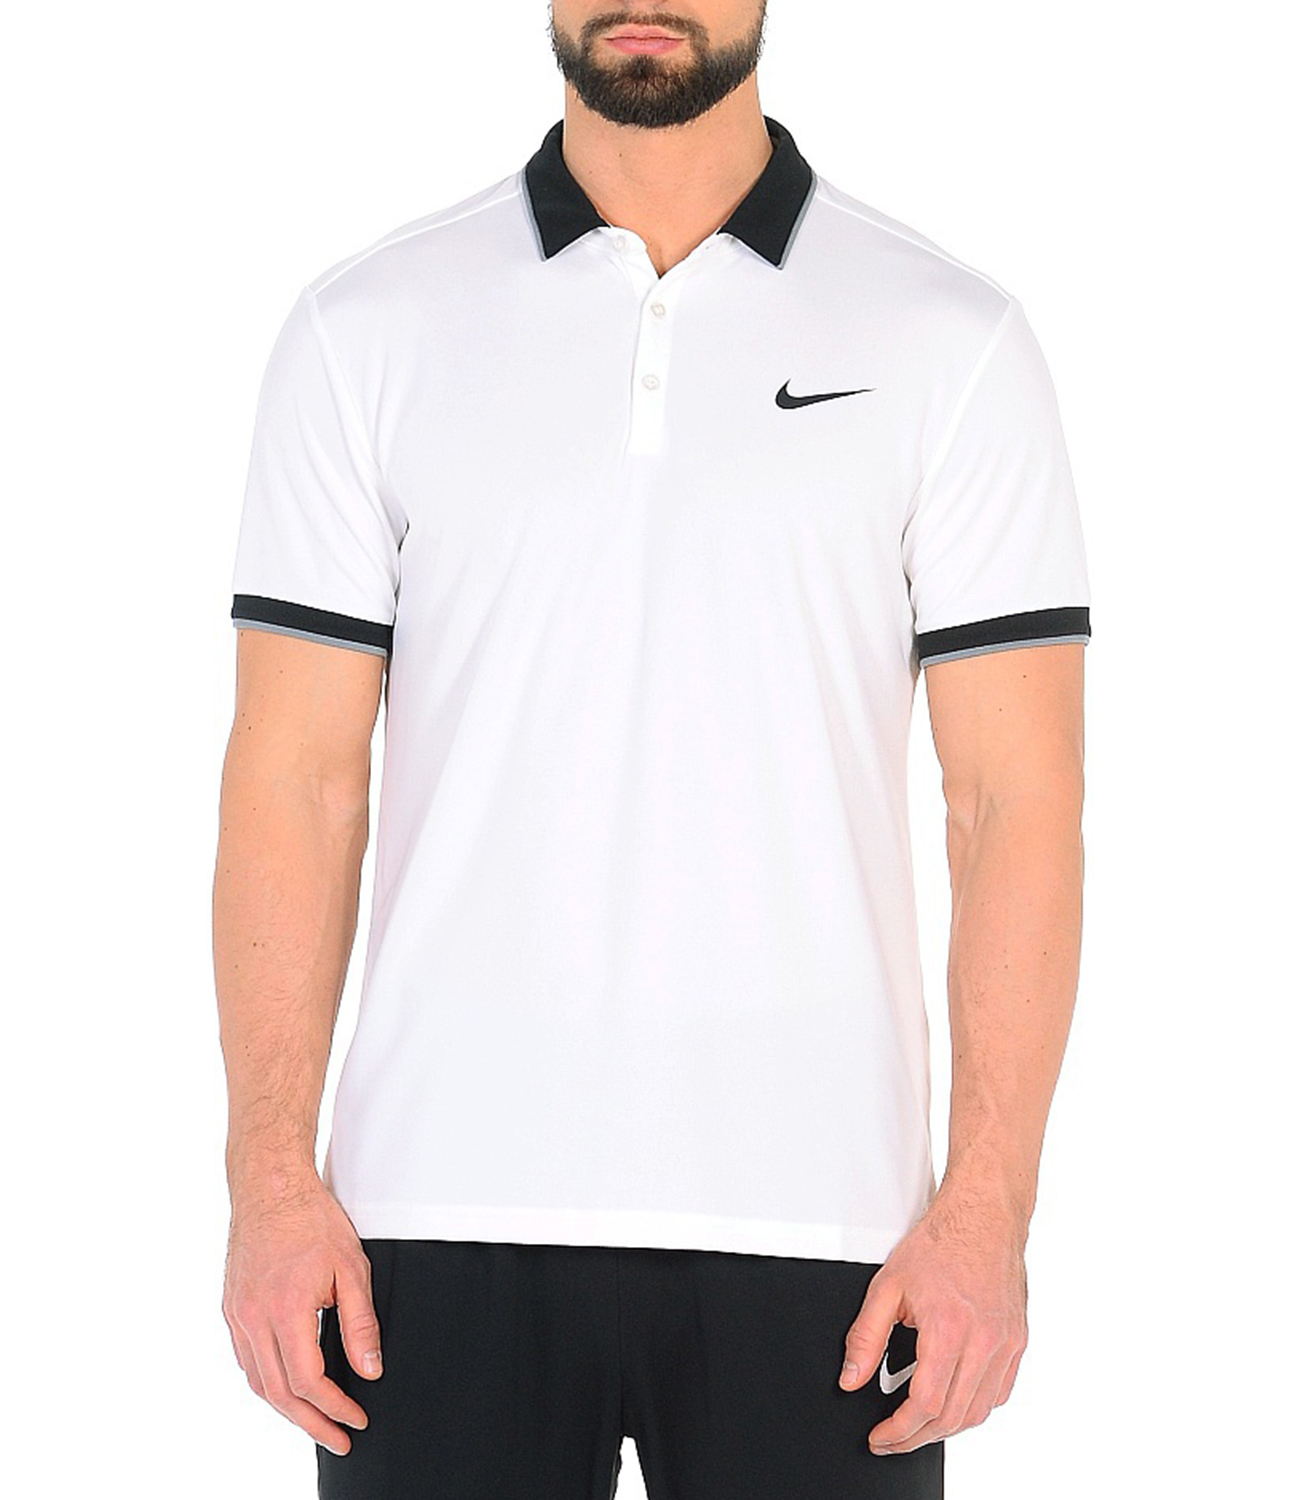 d7e6785355db7 Nike Court Dry Tennis Polo Форма для тенниса 830849 100 купите в ...